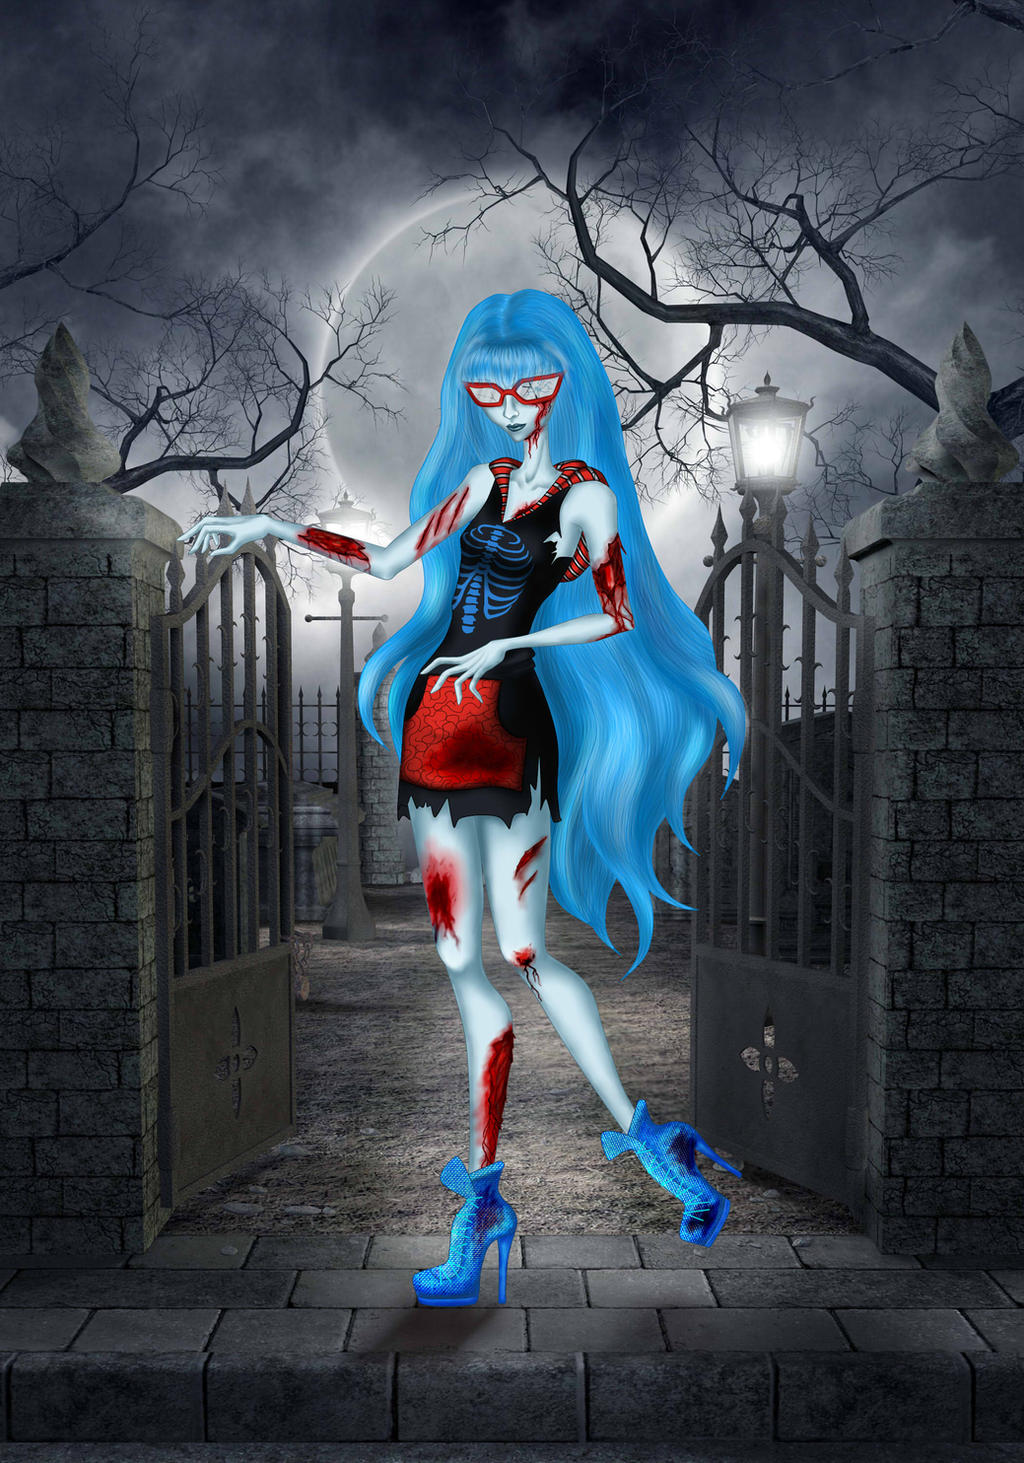 Monster high ghoulia yelps by lindanoul on deviantart - Monster high ghoulia yelps ...